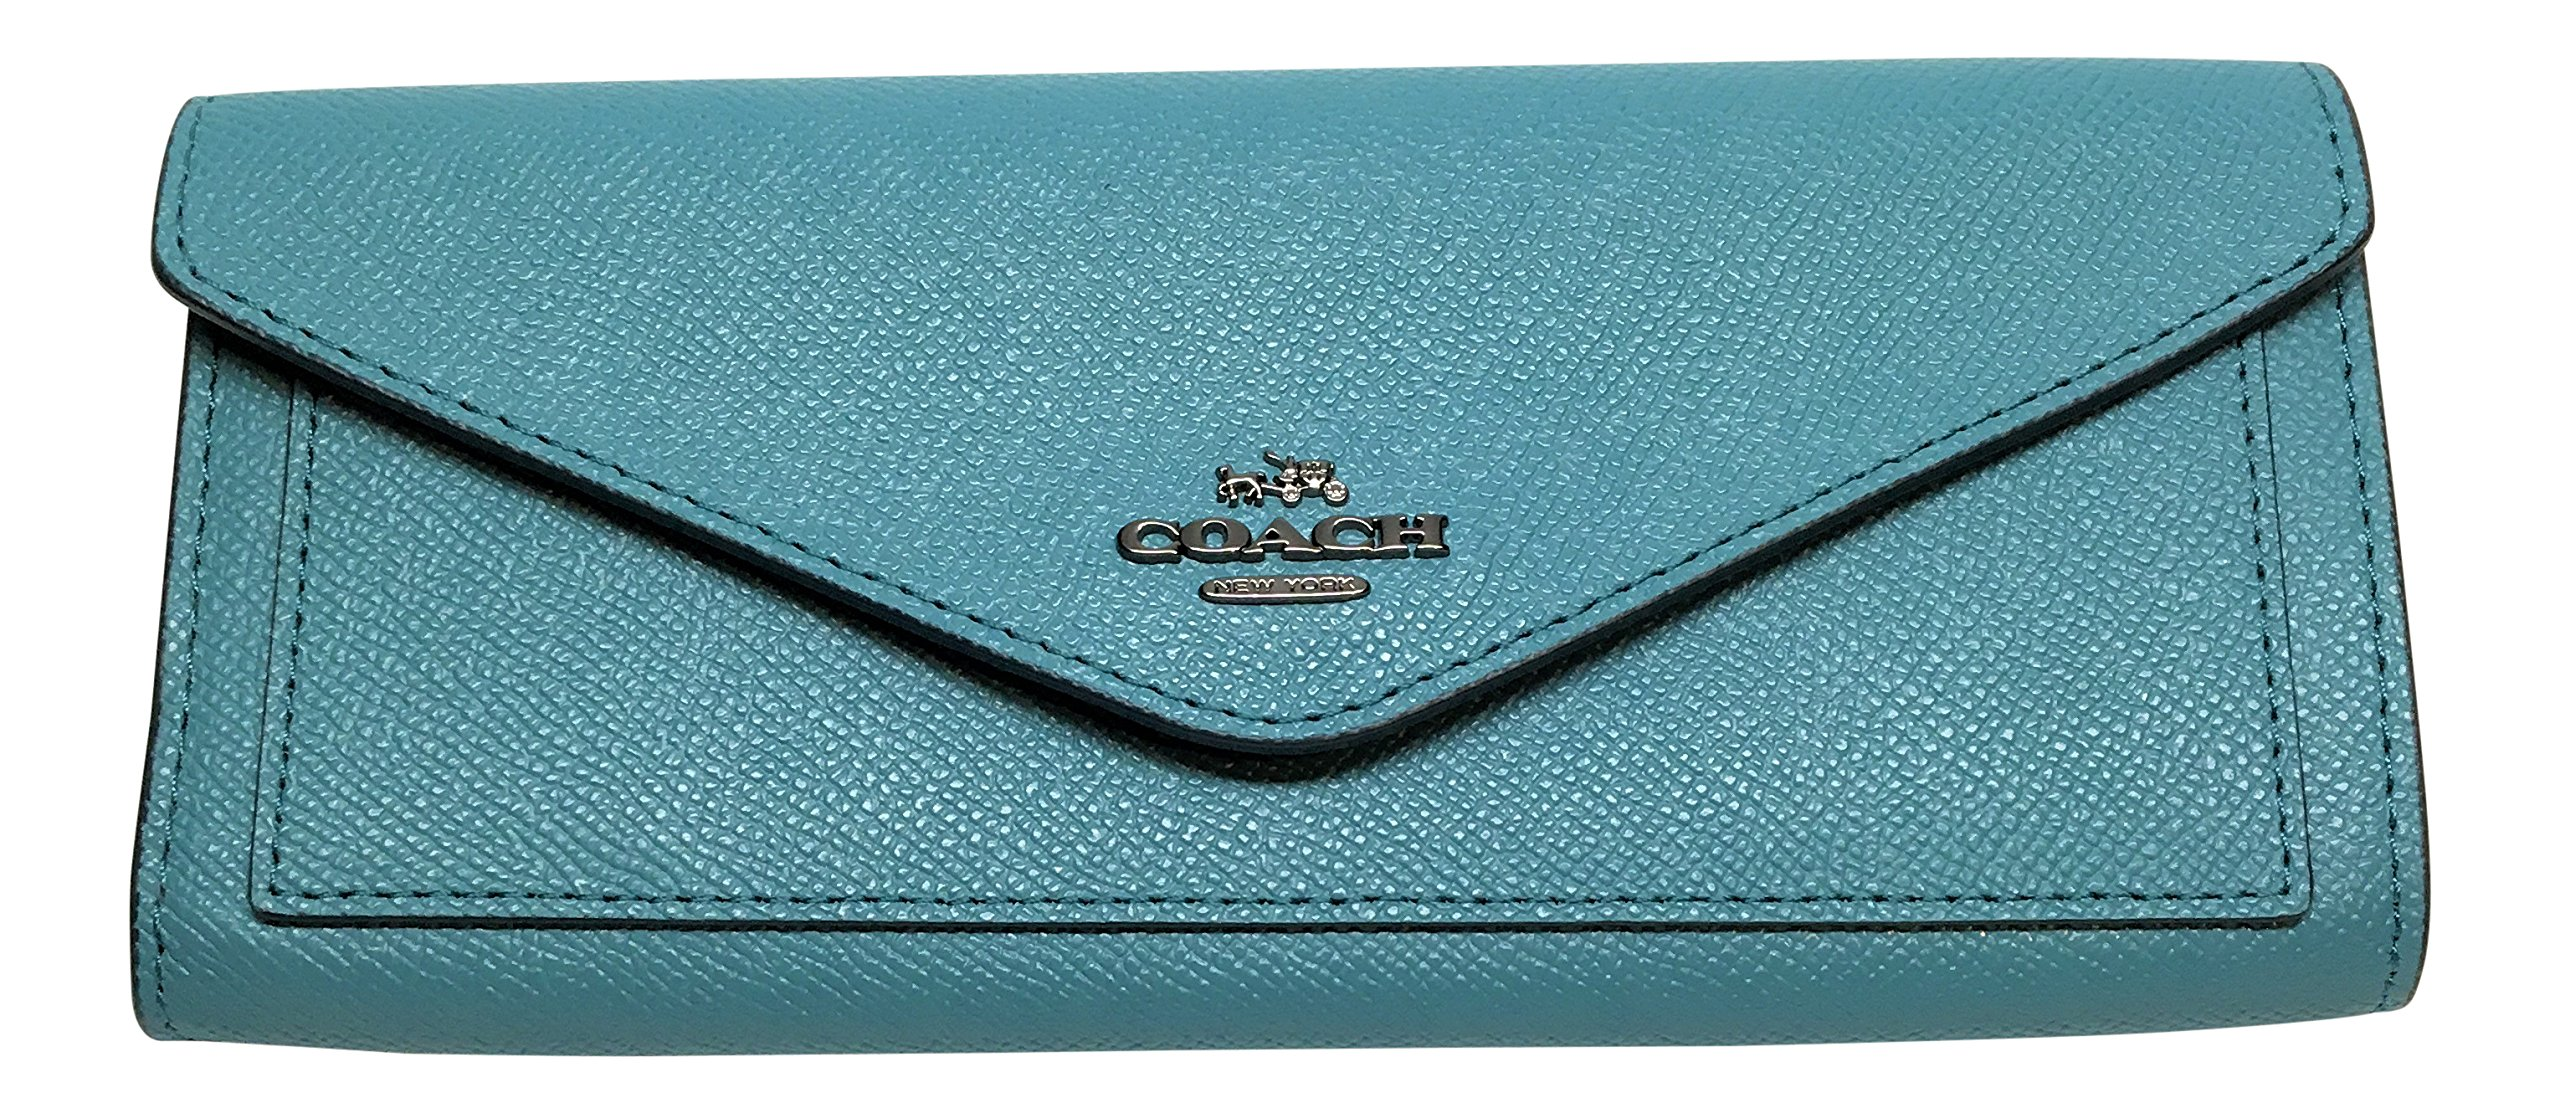 Coach Crossgrain Leather Soft Wallet Ocean 57715 by Coach